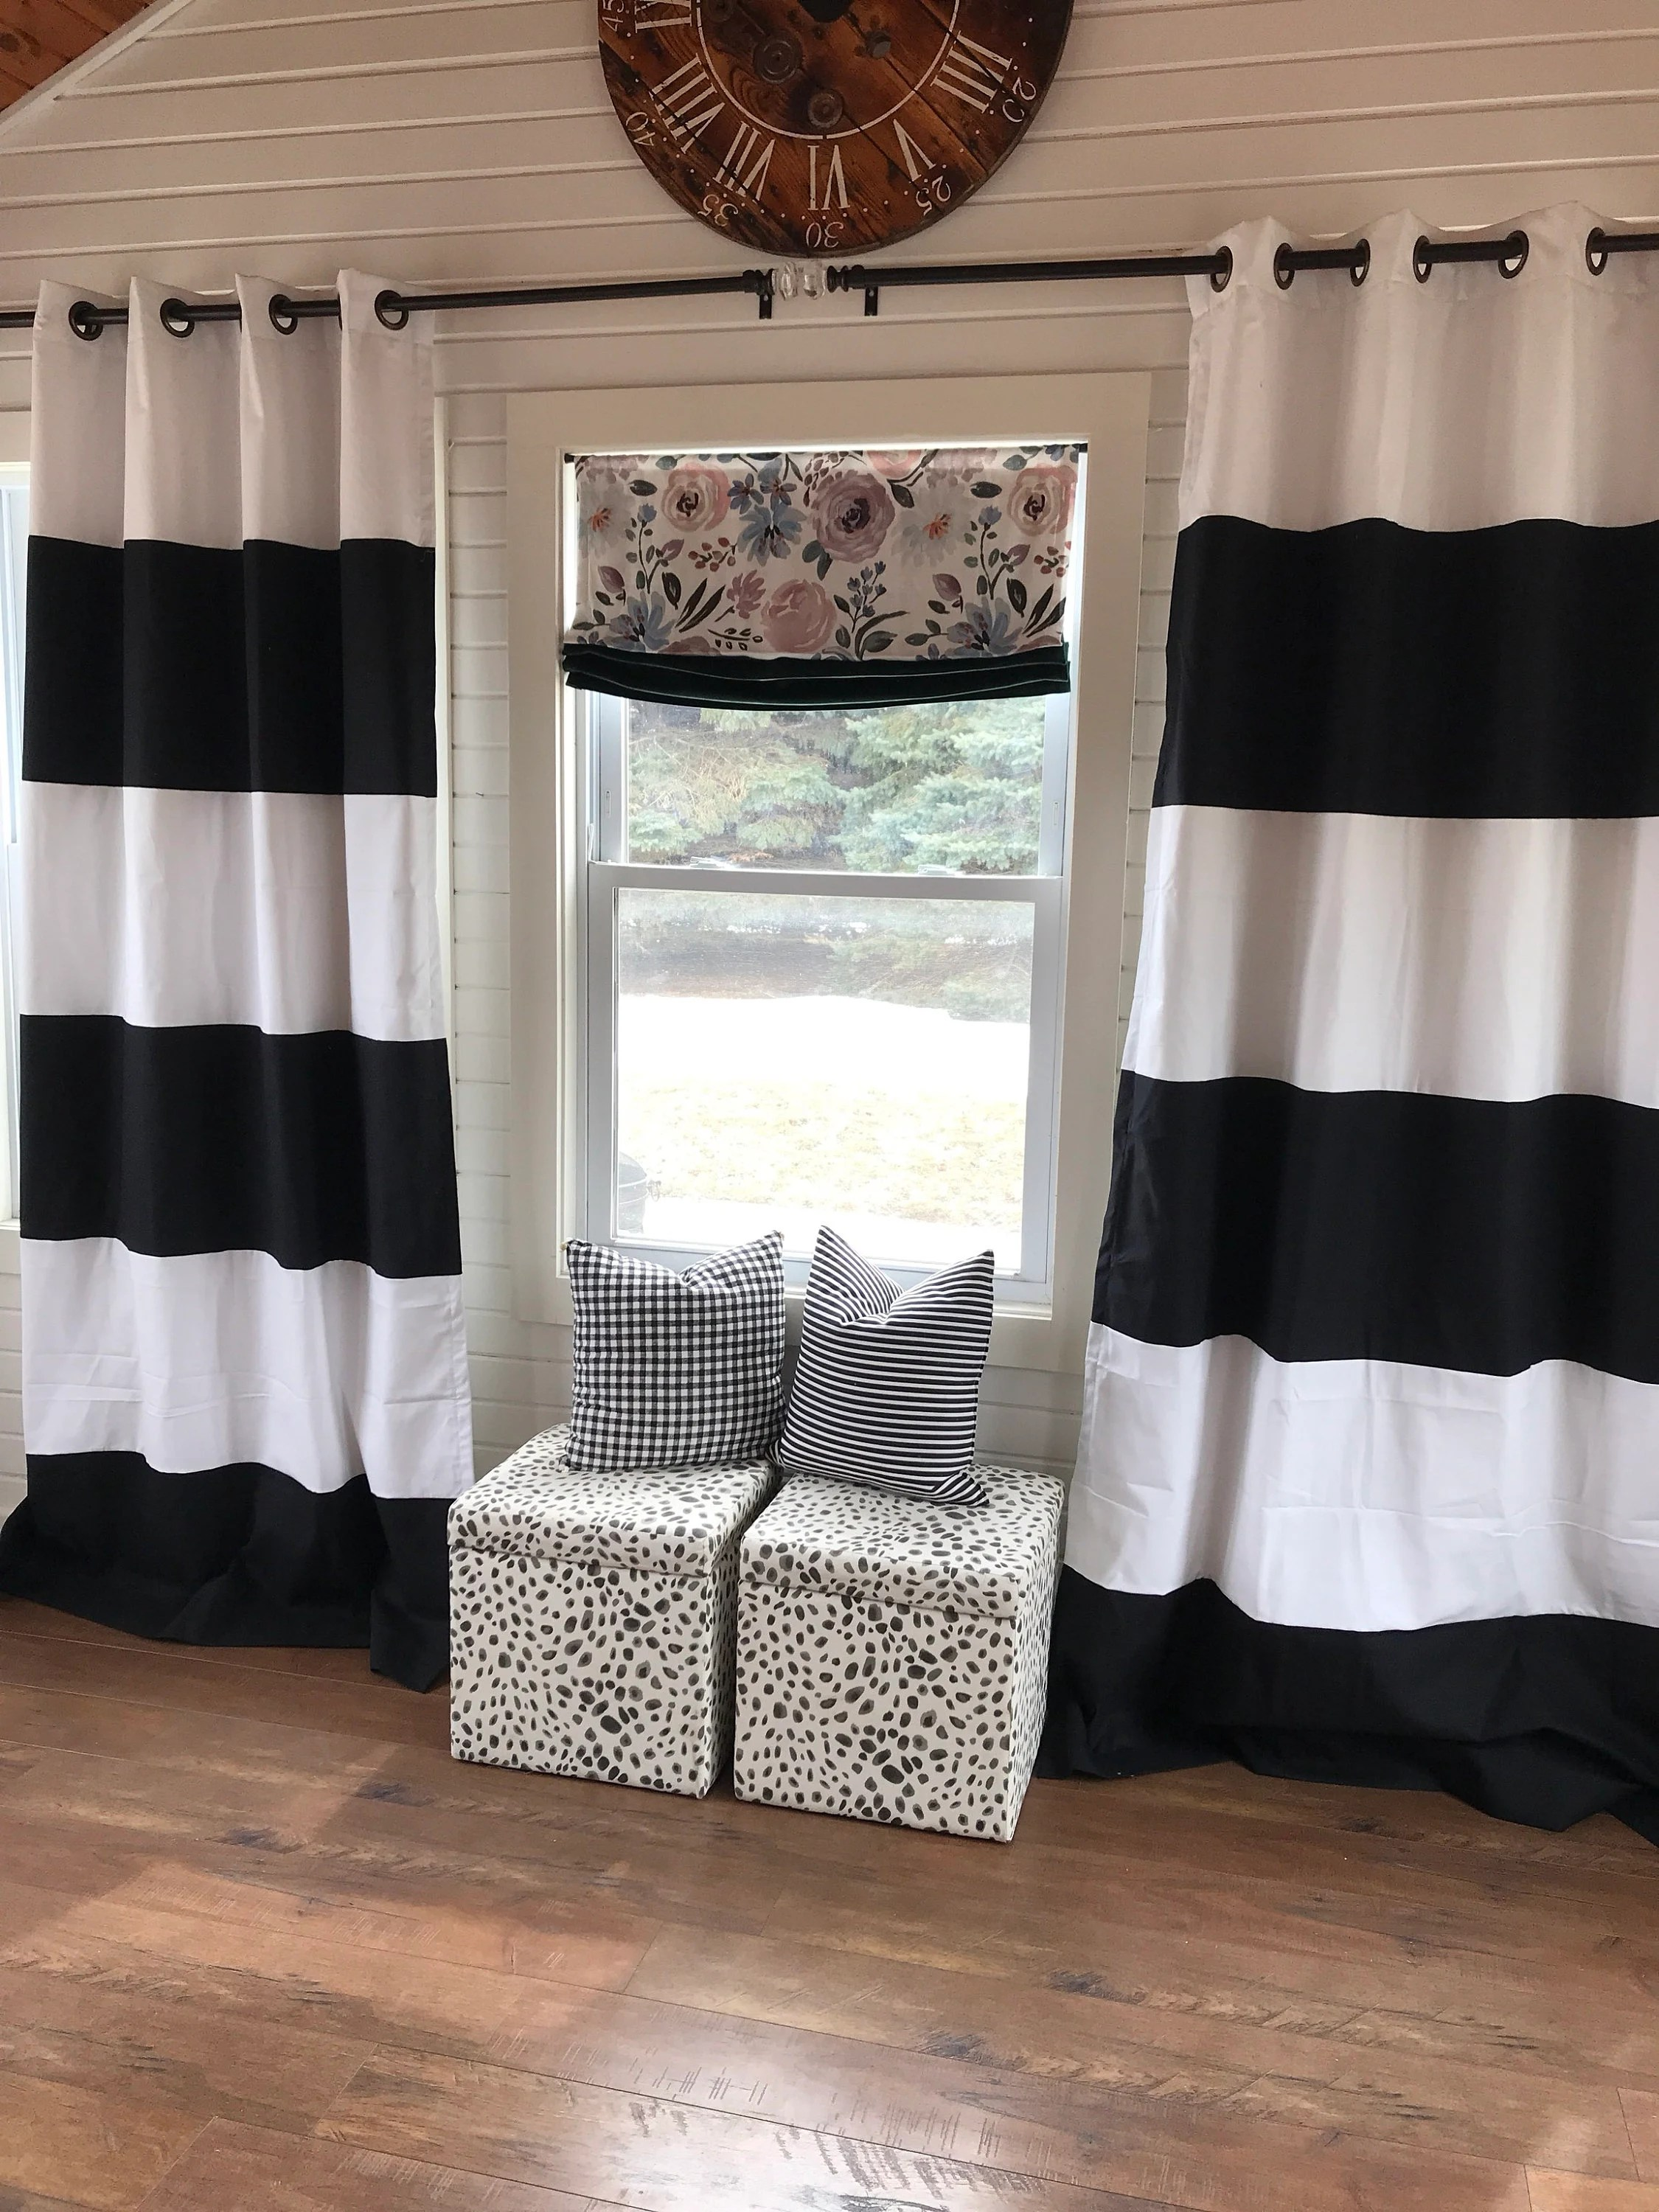 Black Stripe Curtains Custom Black And White Striped Curtains Stripes Color Blocked Nursery Curtains Striped Home Decor Black Striped Curtains Black Striped